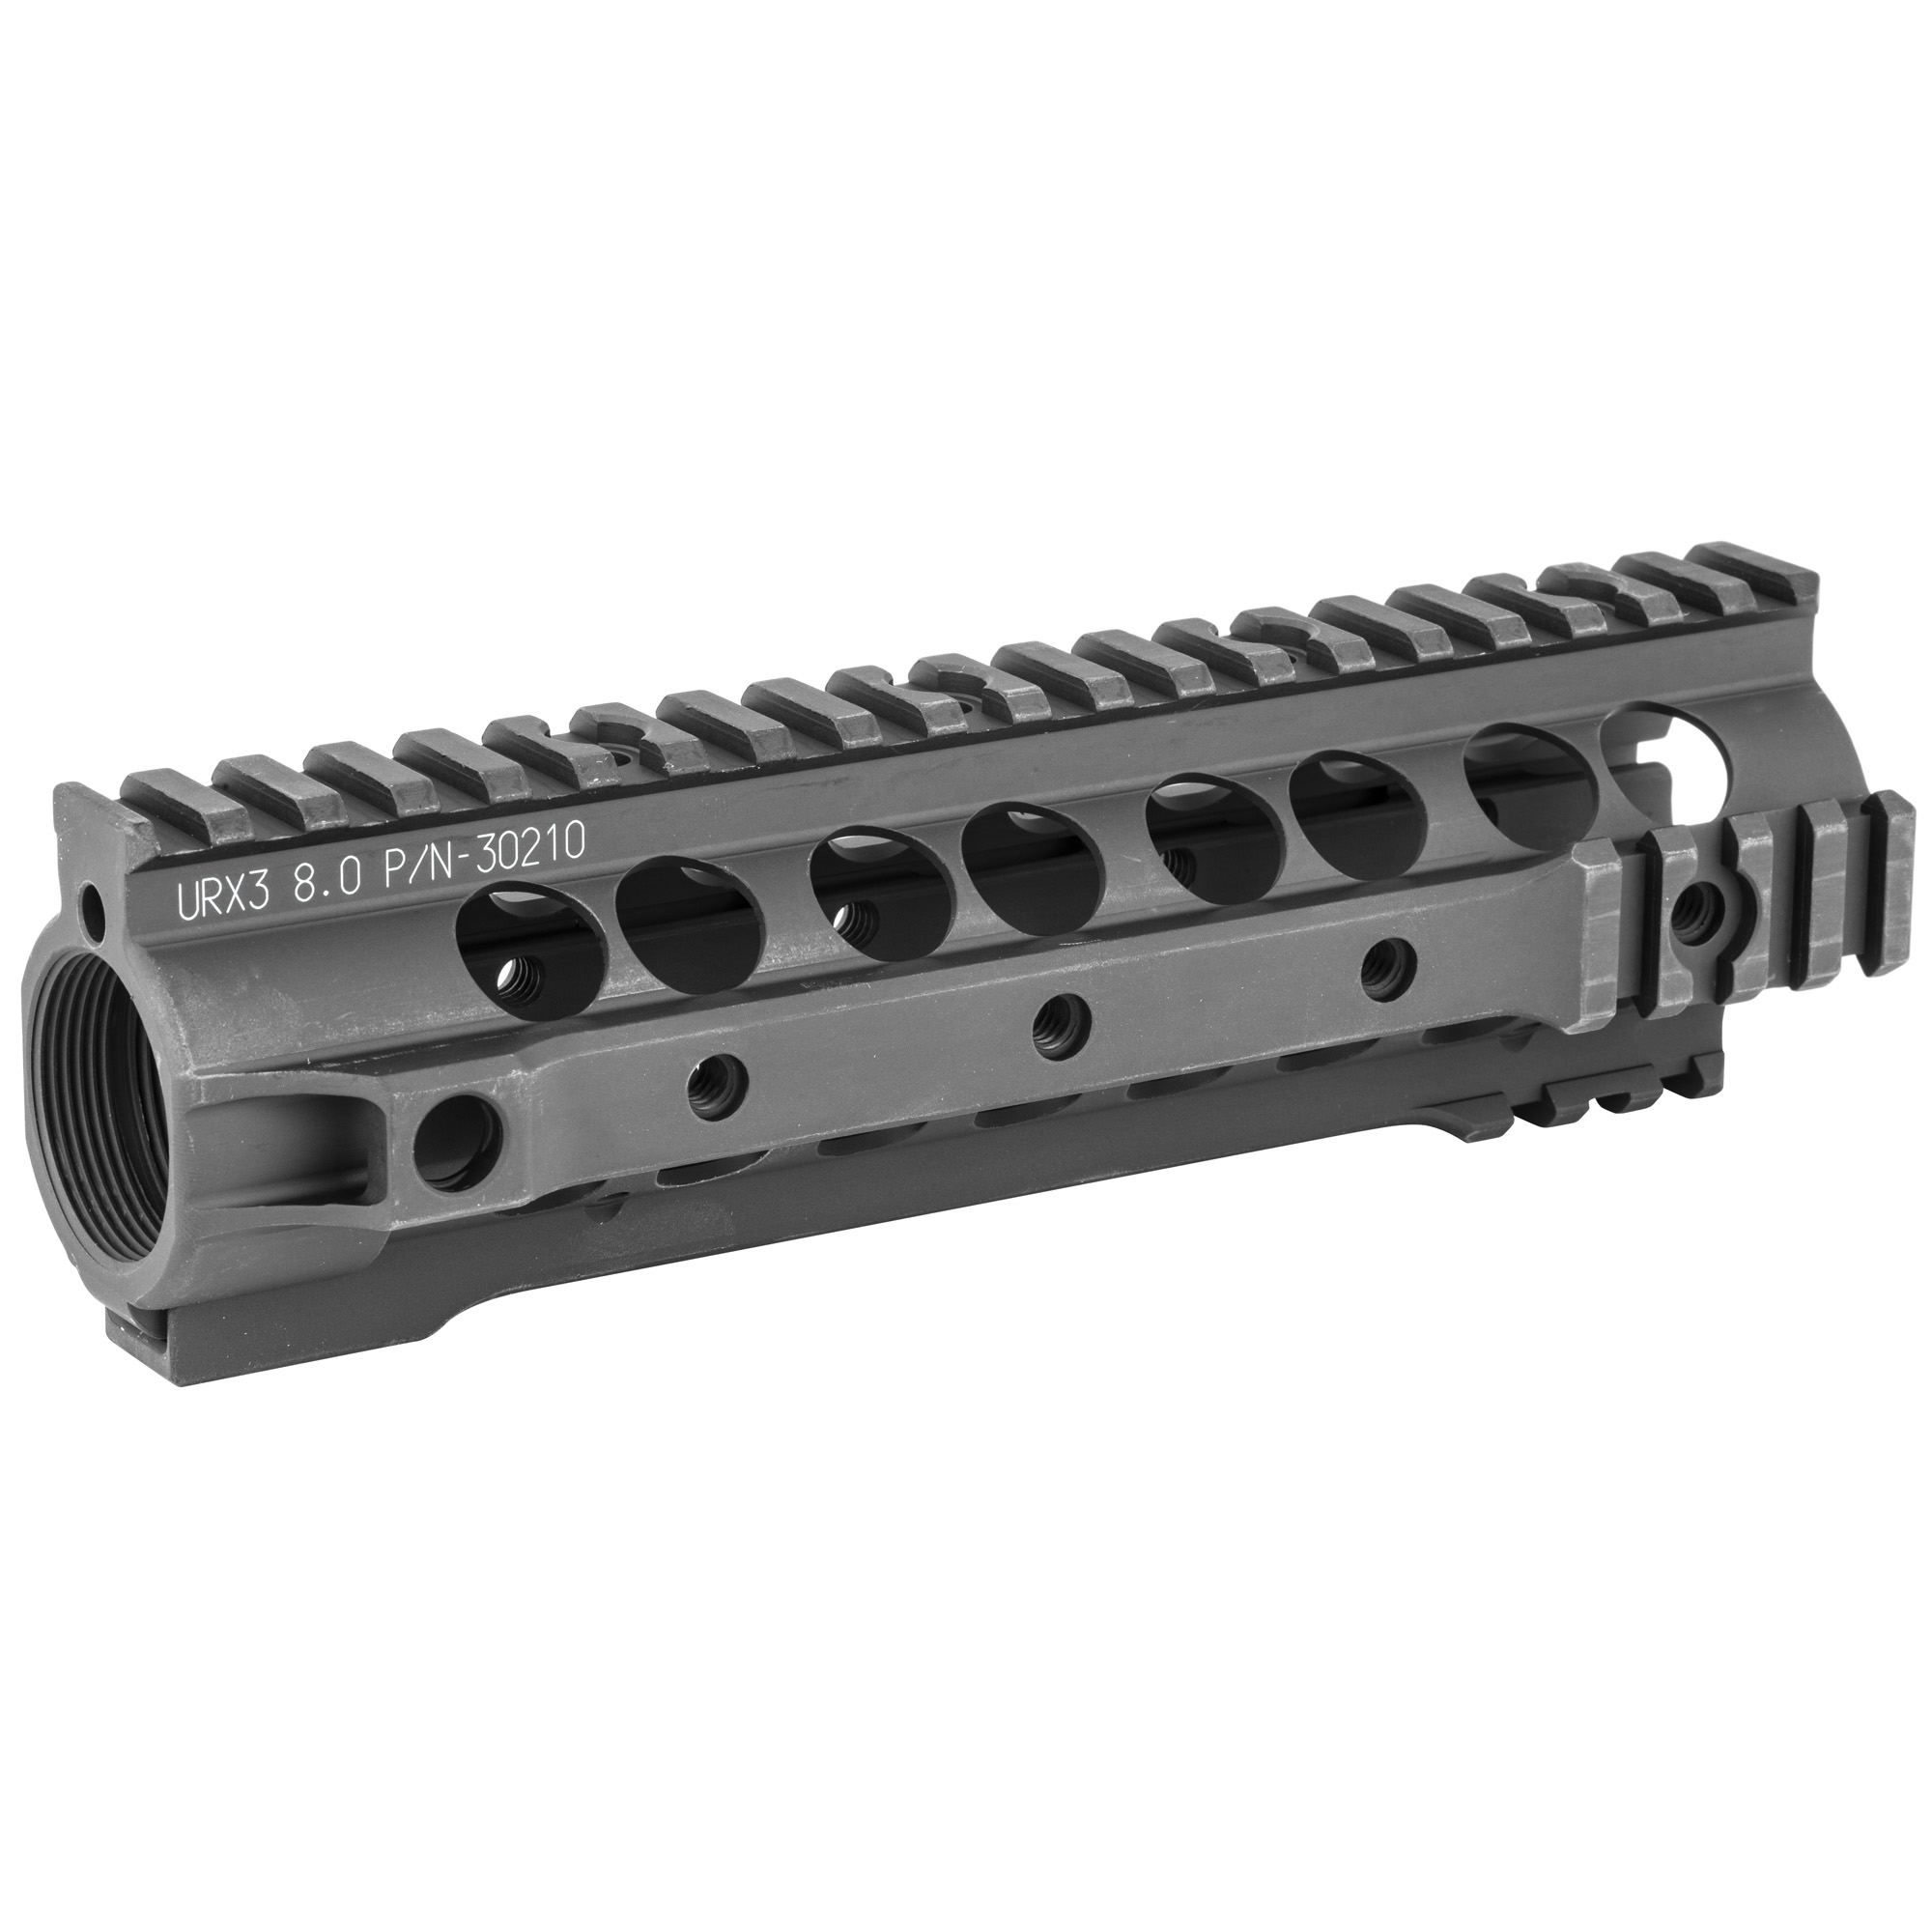 """Knights Armament Co.'s URX III 8"""" Rail Forend Assembly is a free floating"""" fully modular replacement forend for the AR-15 platform. Unlike traditional quad rail designs"""" the URX III incorporates short sections of M1913 Picatinny rail at its front end for mounting accessories"""" eliminating the commonly unused sections of rail for reduced overall weight and a more comfortable grip. A QD sling swivel socket is provided on each side at the rear of the rail for ambidextrous sling compatibility. This URX III rail requires that the rifle have a pistol or carbine length gas system and a low profile gas block. It is compatible with mid length gas systems but will leave a small portion of gas tube exposed in this configuration. Disassembly of the rifle's gas system and removal of the factory barrel nut will be necessary. This forend uses a proprietary barrel nut that MUST be installed using a KAC URX Barrel Nut Wrench. For AR-15/SR-15 based platforms only; not compatible with SR-25 variants. Installation instructions"""" barrel nut and hardware are included."""